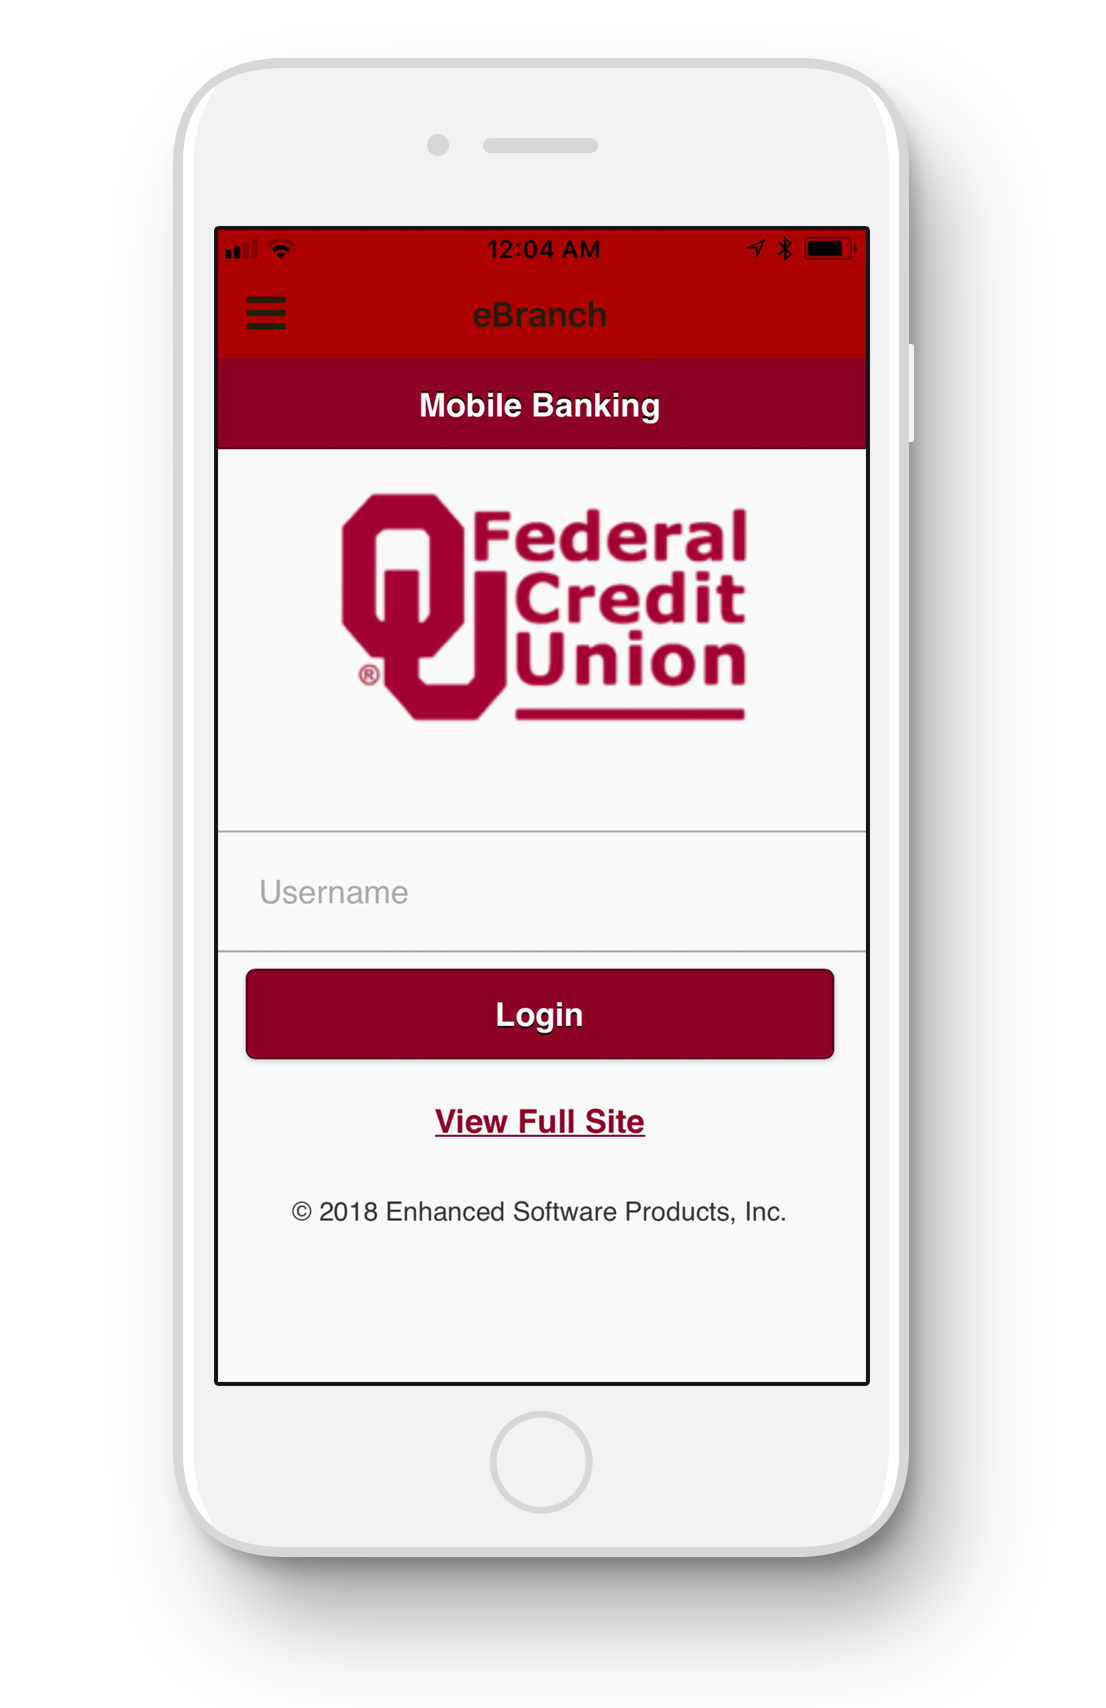 OU Federal Credit Union iPhone app